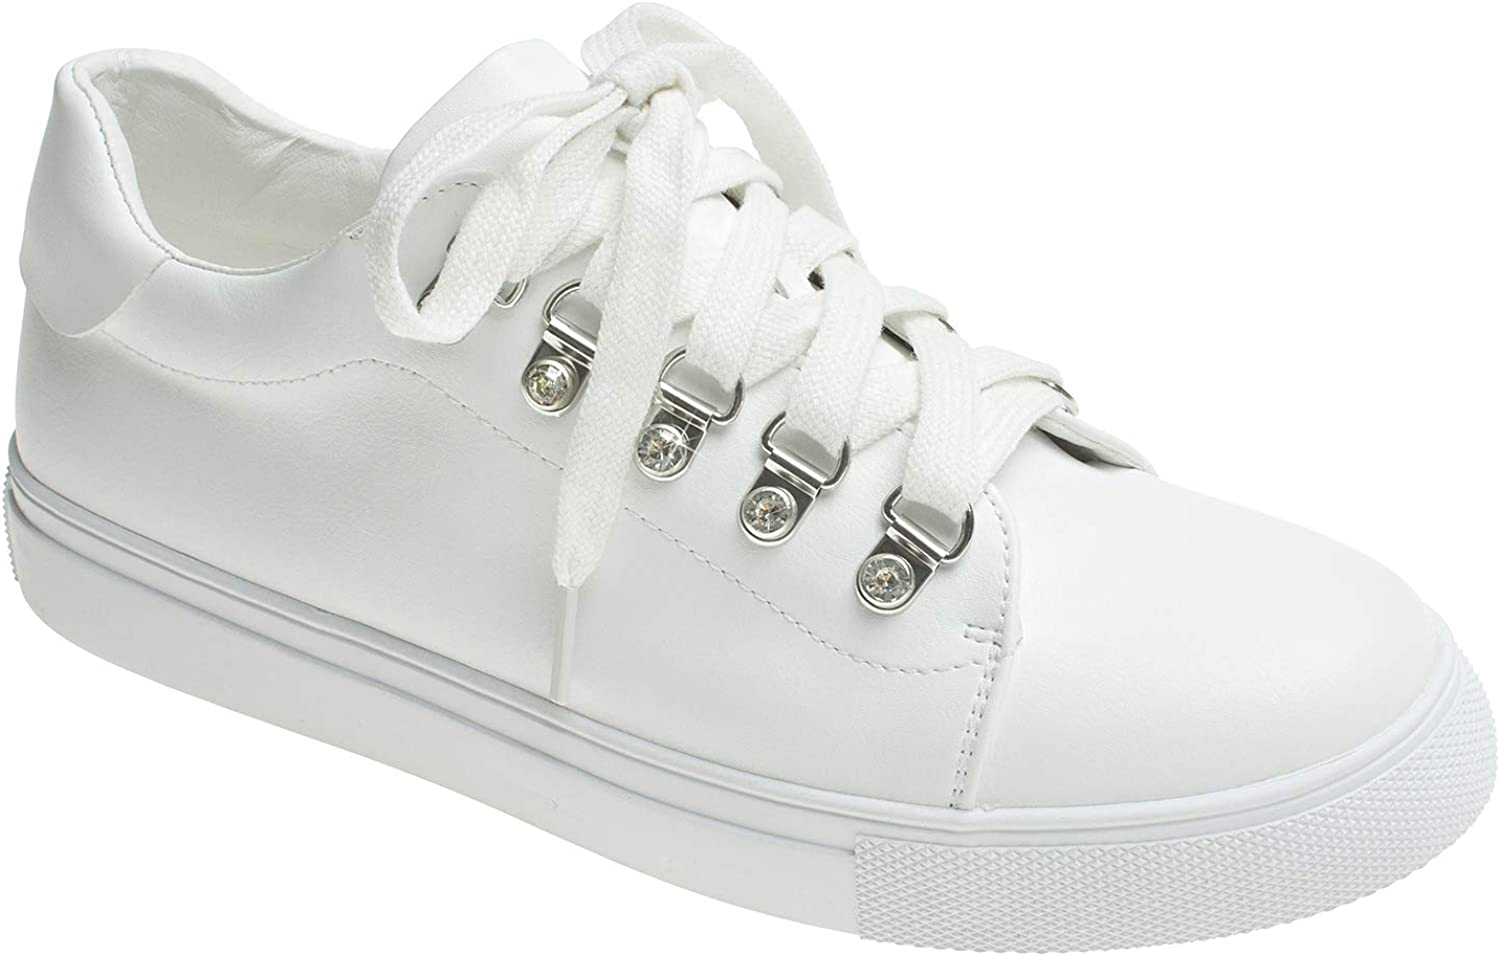 AnnaKastle Womens Faux Crystal Eyelets Lace Up Fashion Sneakers